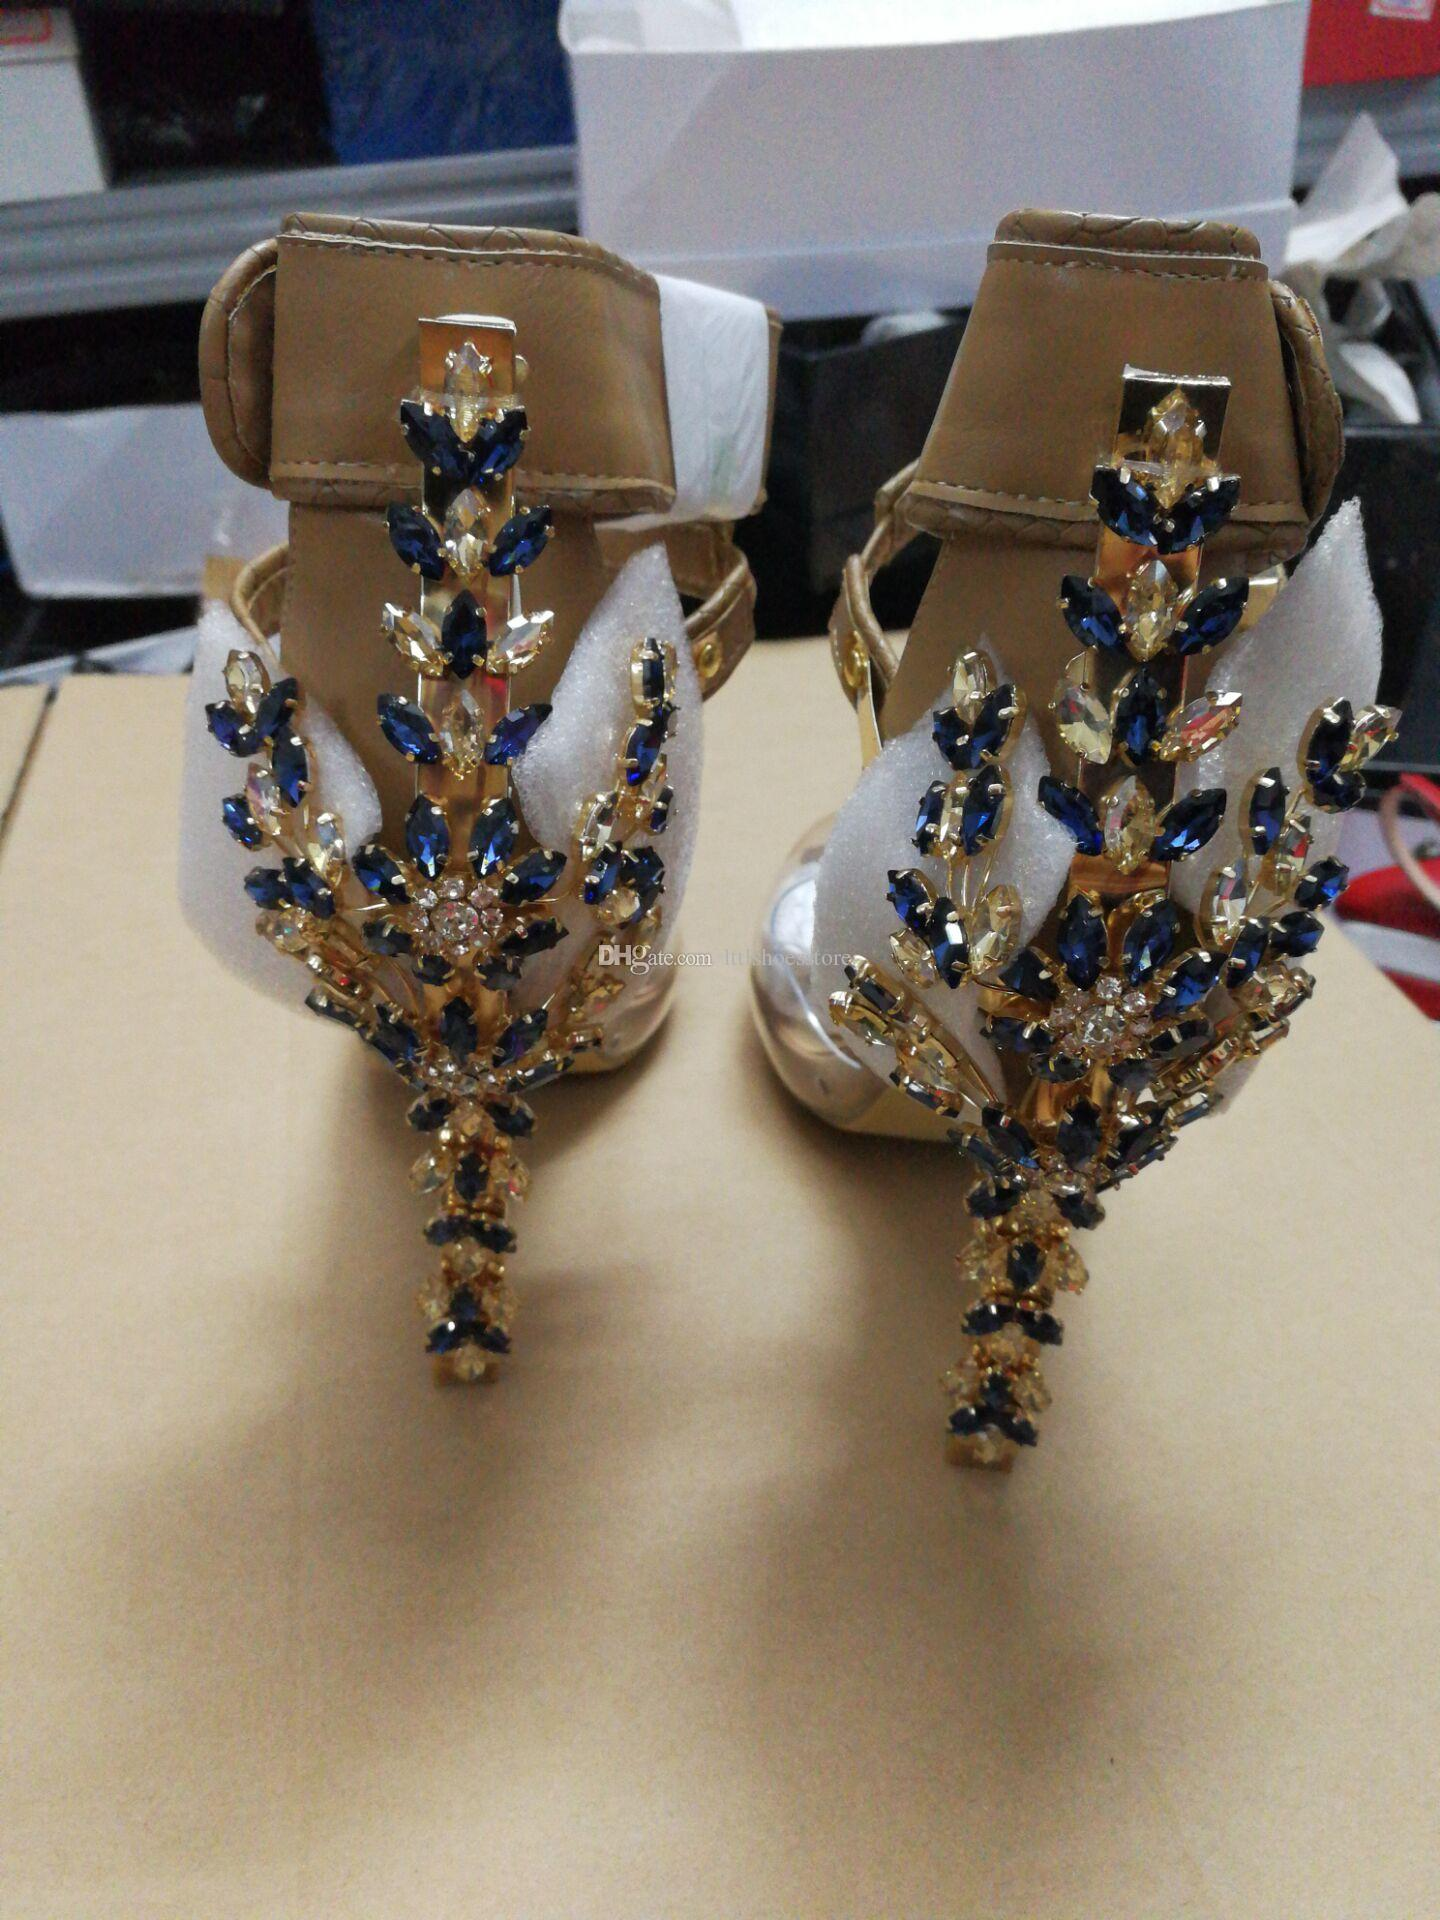 LTTL Brand Shoes Real Pic PVC Rihanna Sexy Crystal Embellished Sandals Padlock Spiked High Heels Pumps Colorful Beaded Celebrity Party Shoes